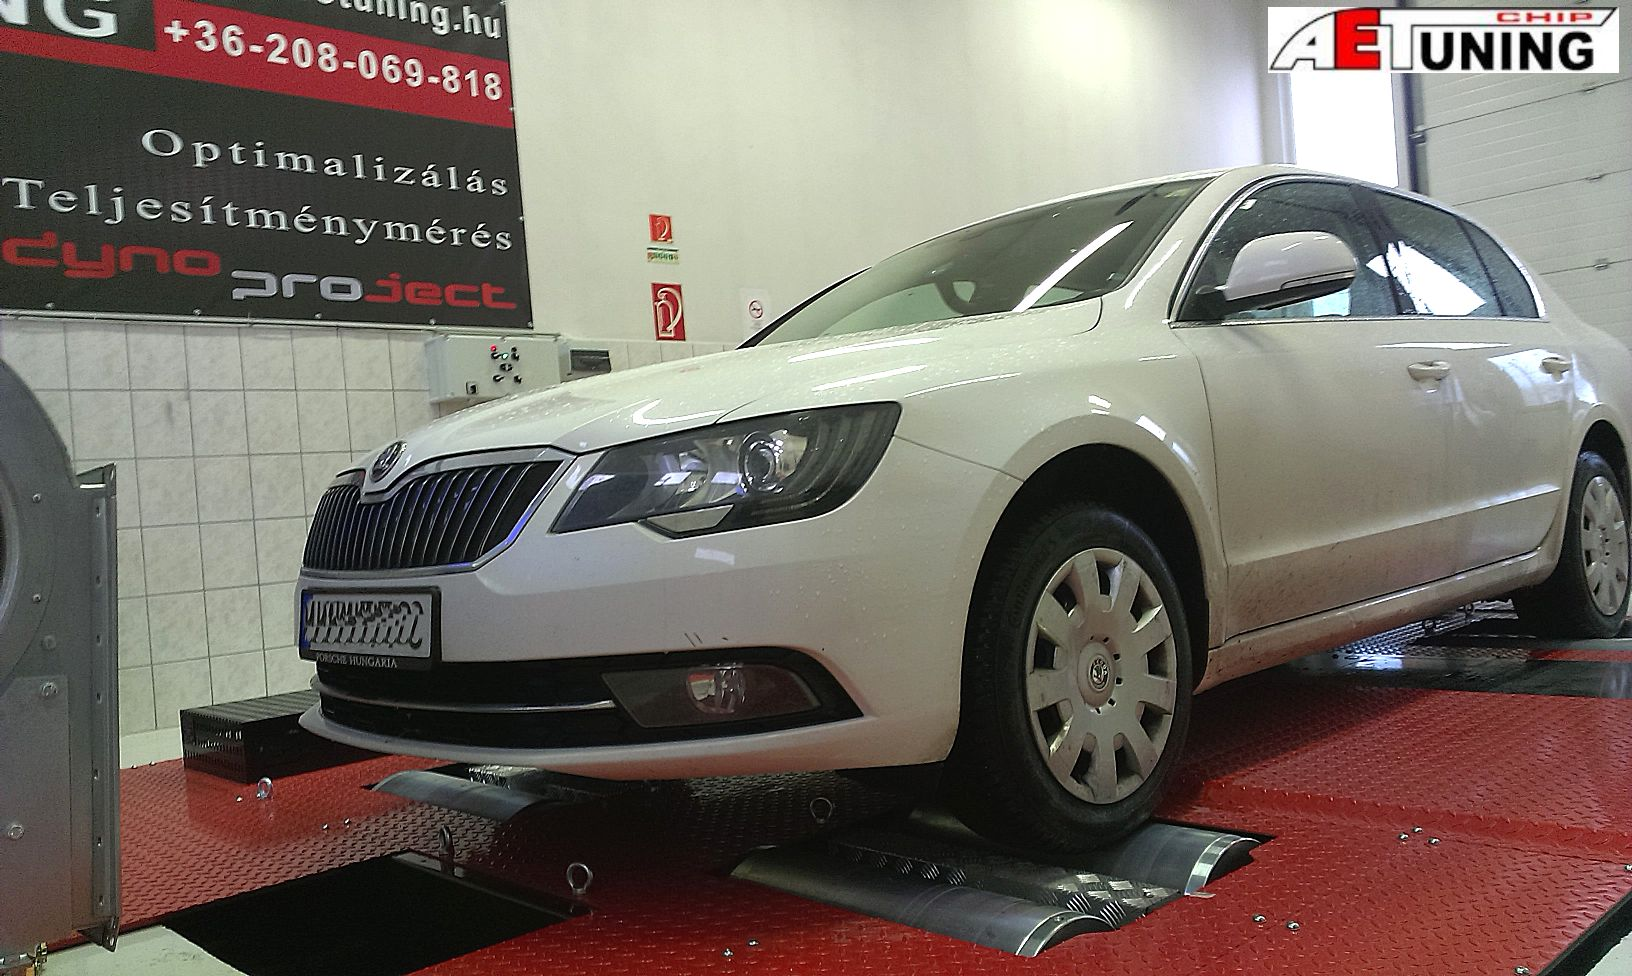 skoda_superb_chiptuning_referencia_teljesitmeny_merse